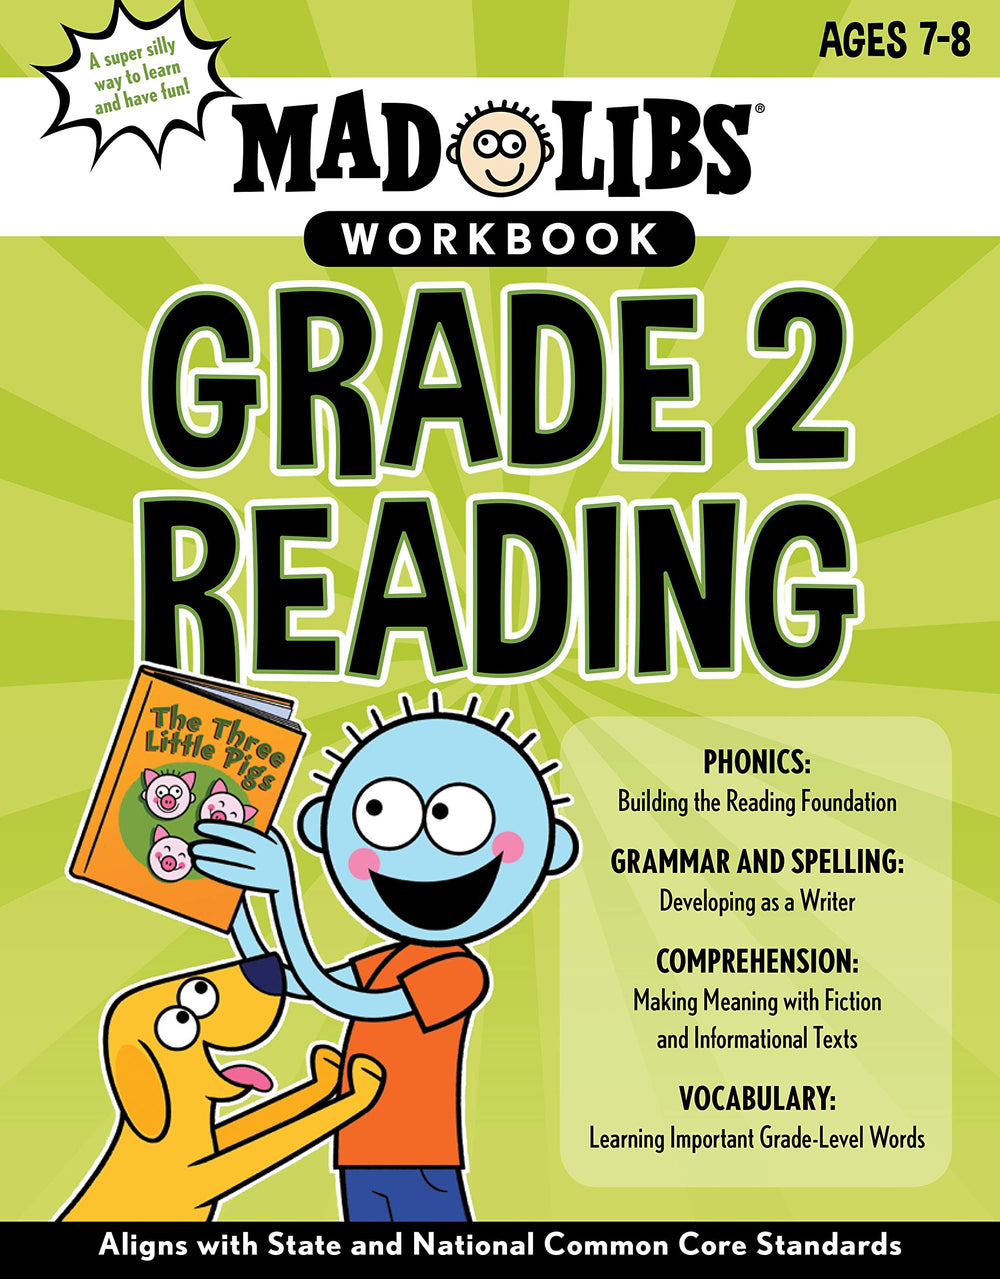 Mad Libs Workbook - Grade 2 Reading